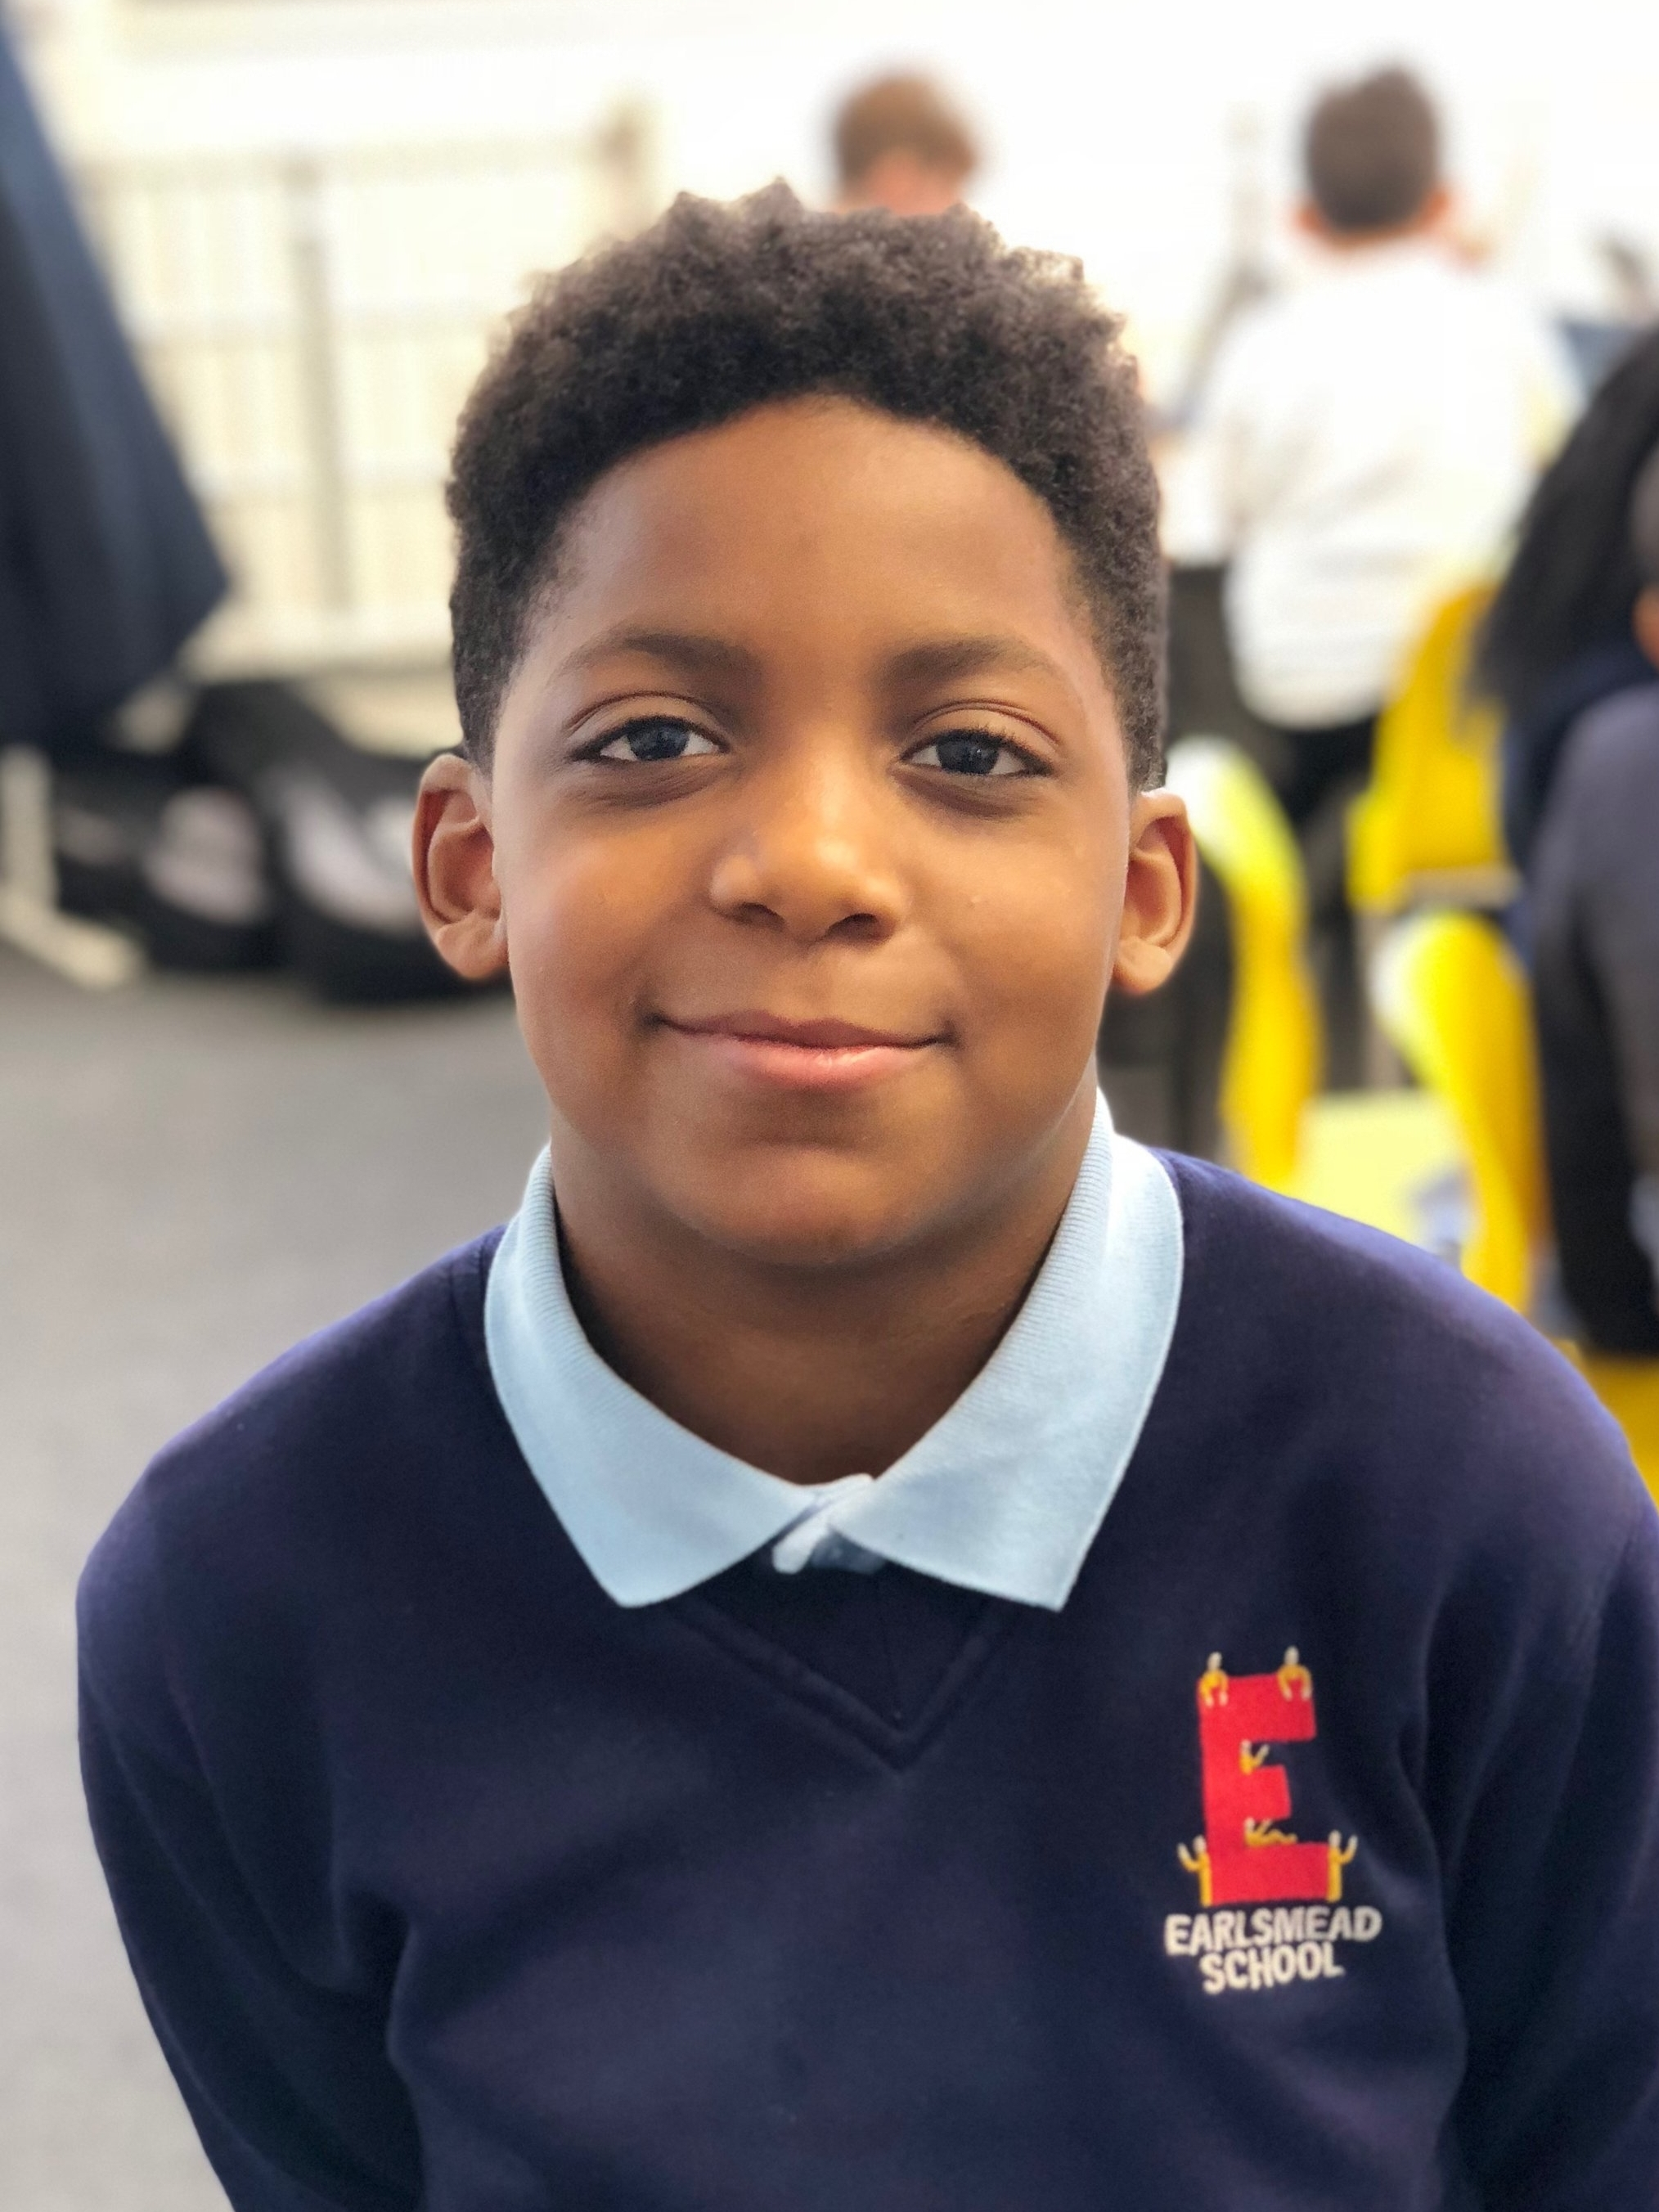 Rashan- Head Boy - Year 3 Pink  I am a Head Boy and I am good at having conversations with different people. I enjoyed talking to the mayor of Haringey. I hope that as a Head Boy I will bring some important changes such as more P.E and fitness for the school. I will make sure that I listen to other councillors so that we can make important changes for the school.